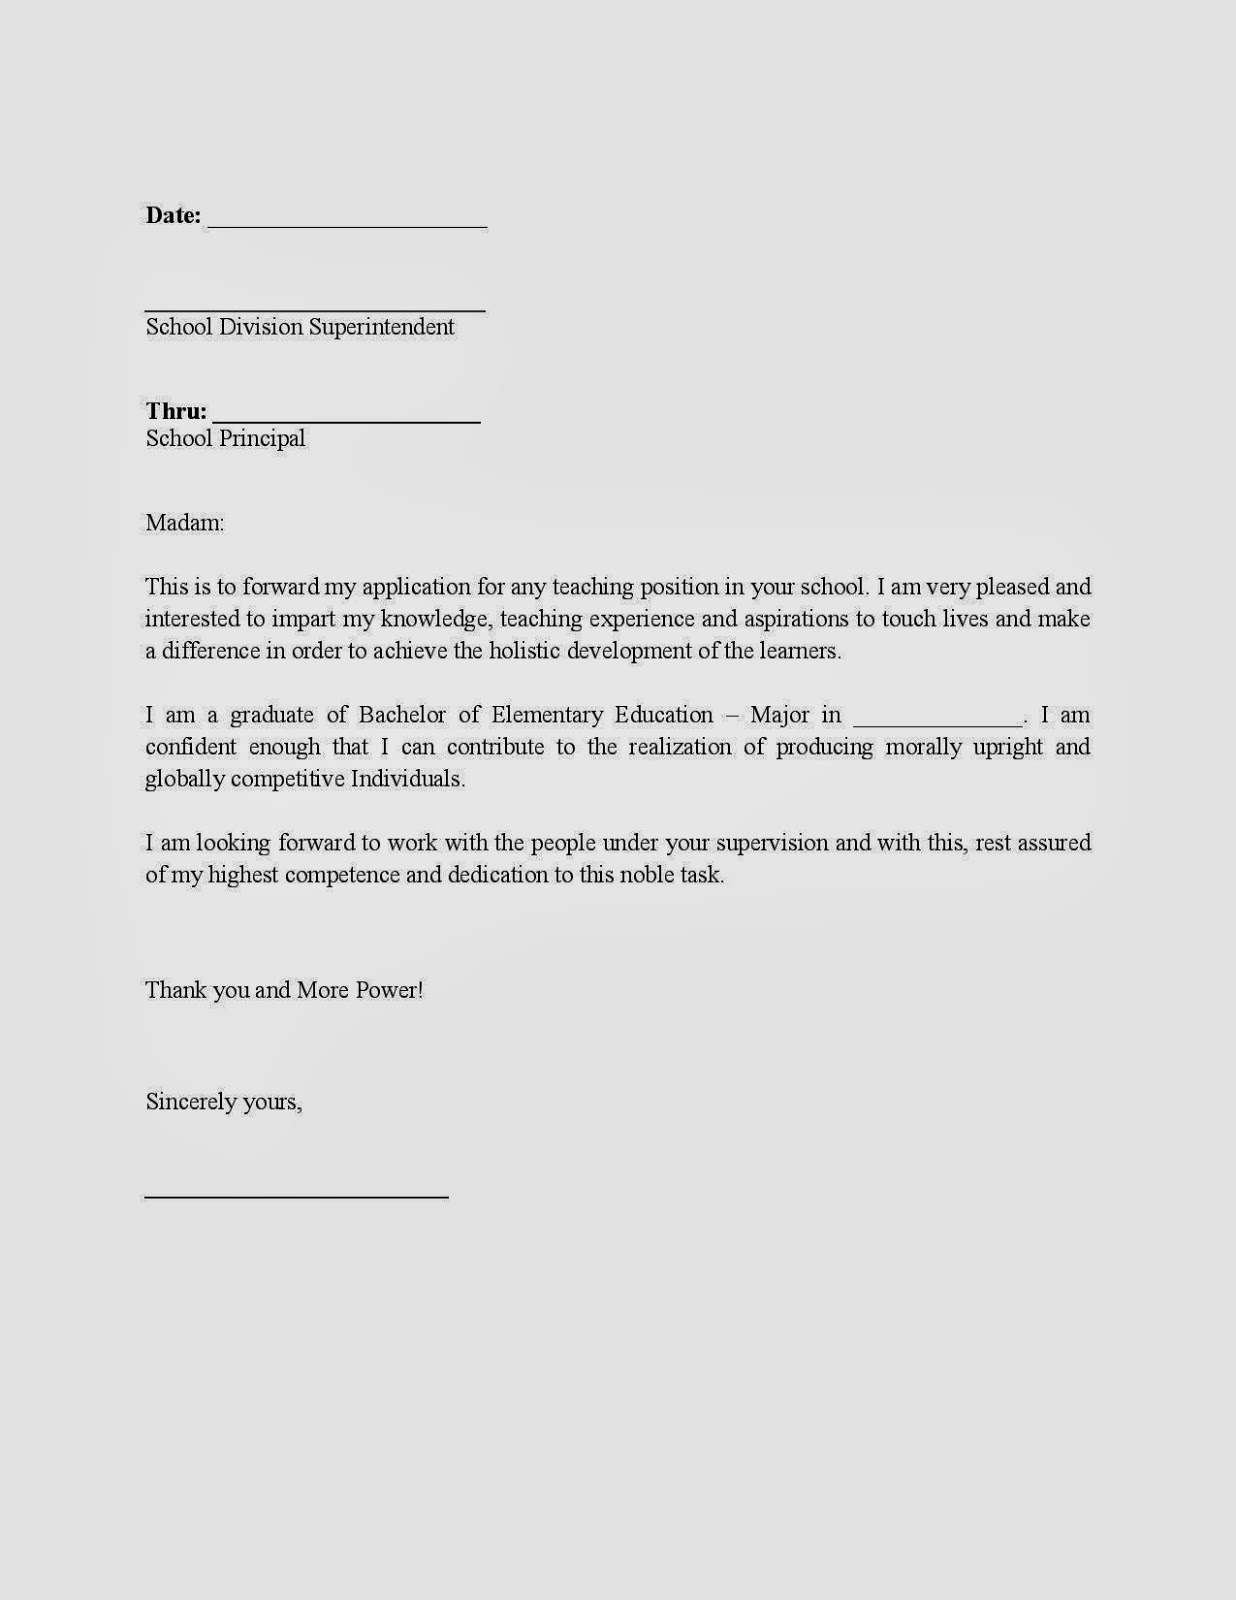 Leave application letter to school principal research paper help leave application letter to school principal how to write a school leave letter how to go thecheapjerseys Choice Image